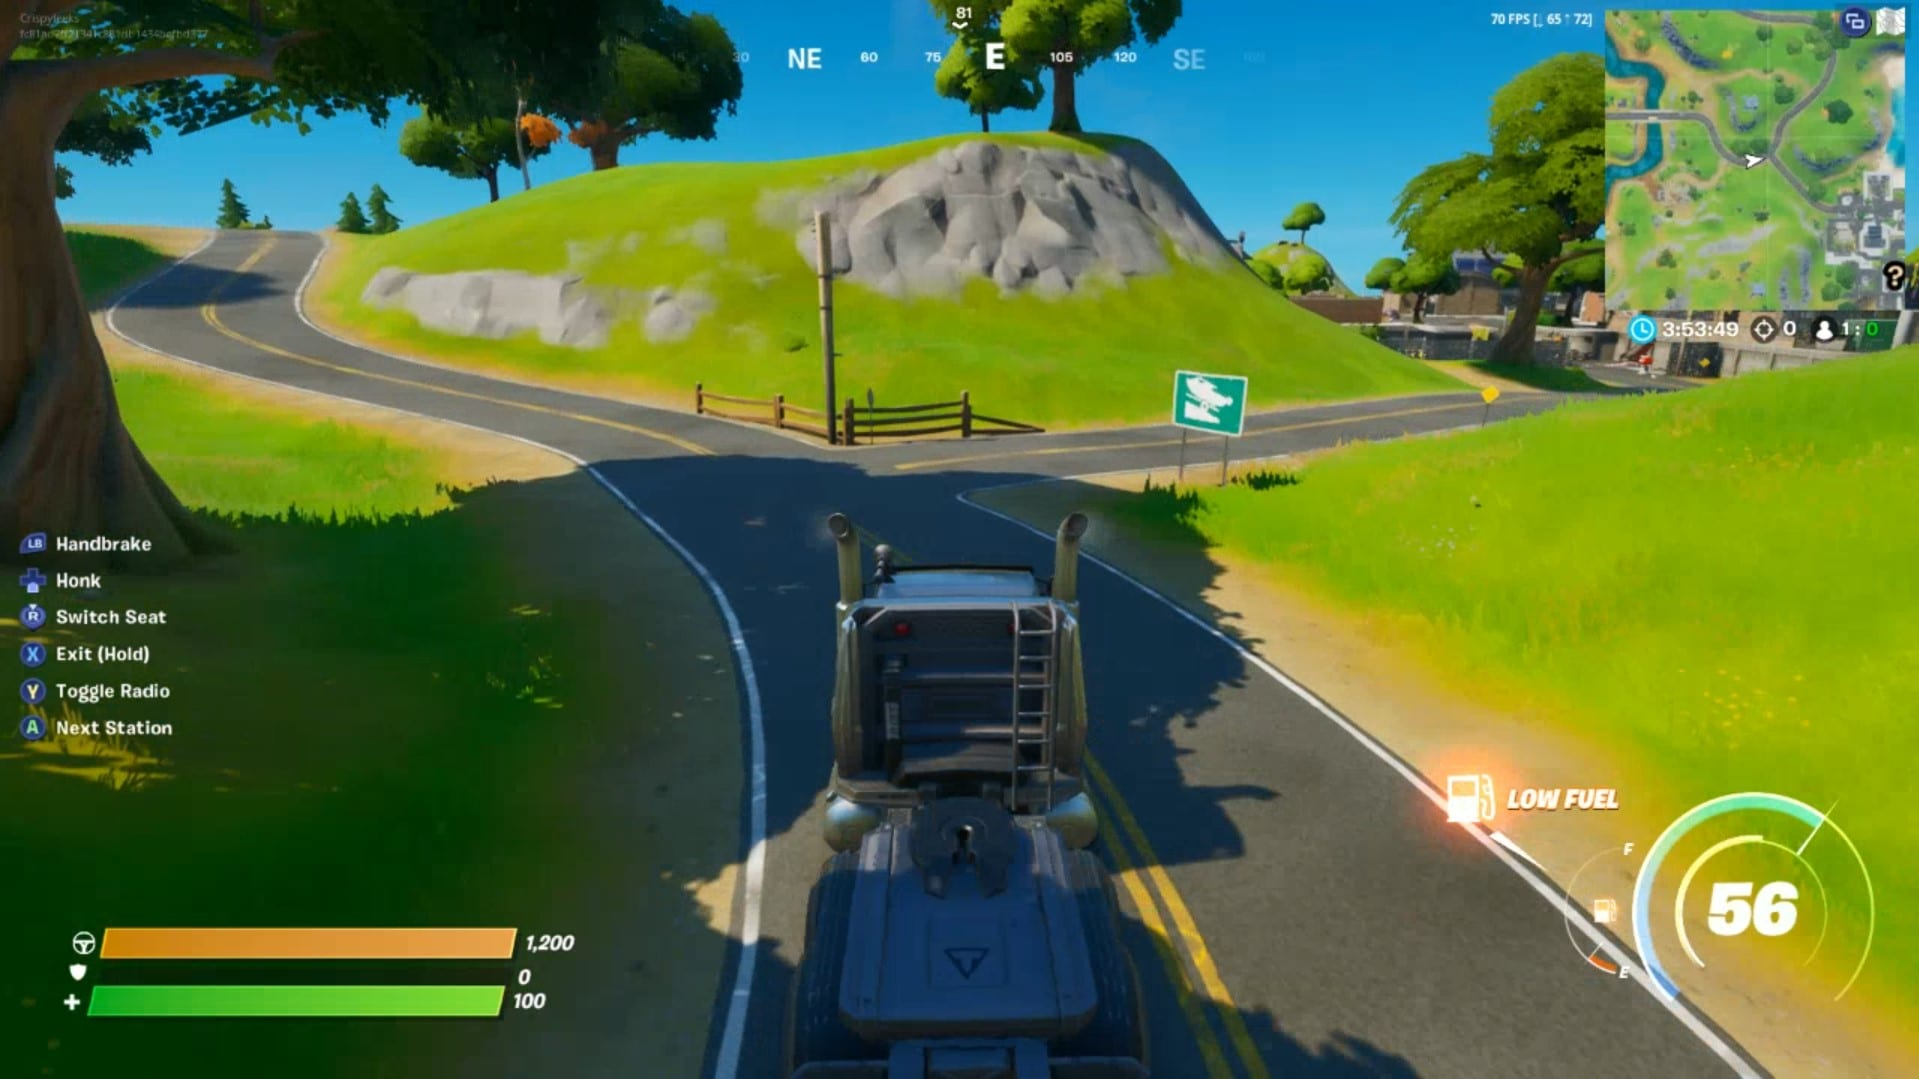 Fortnite Car Locations How To Drive Cars